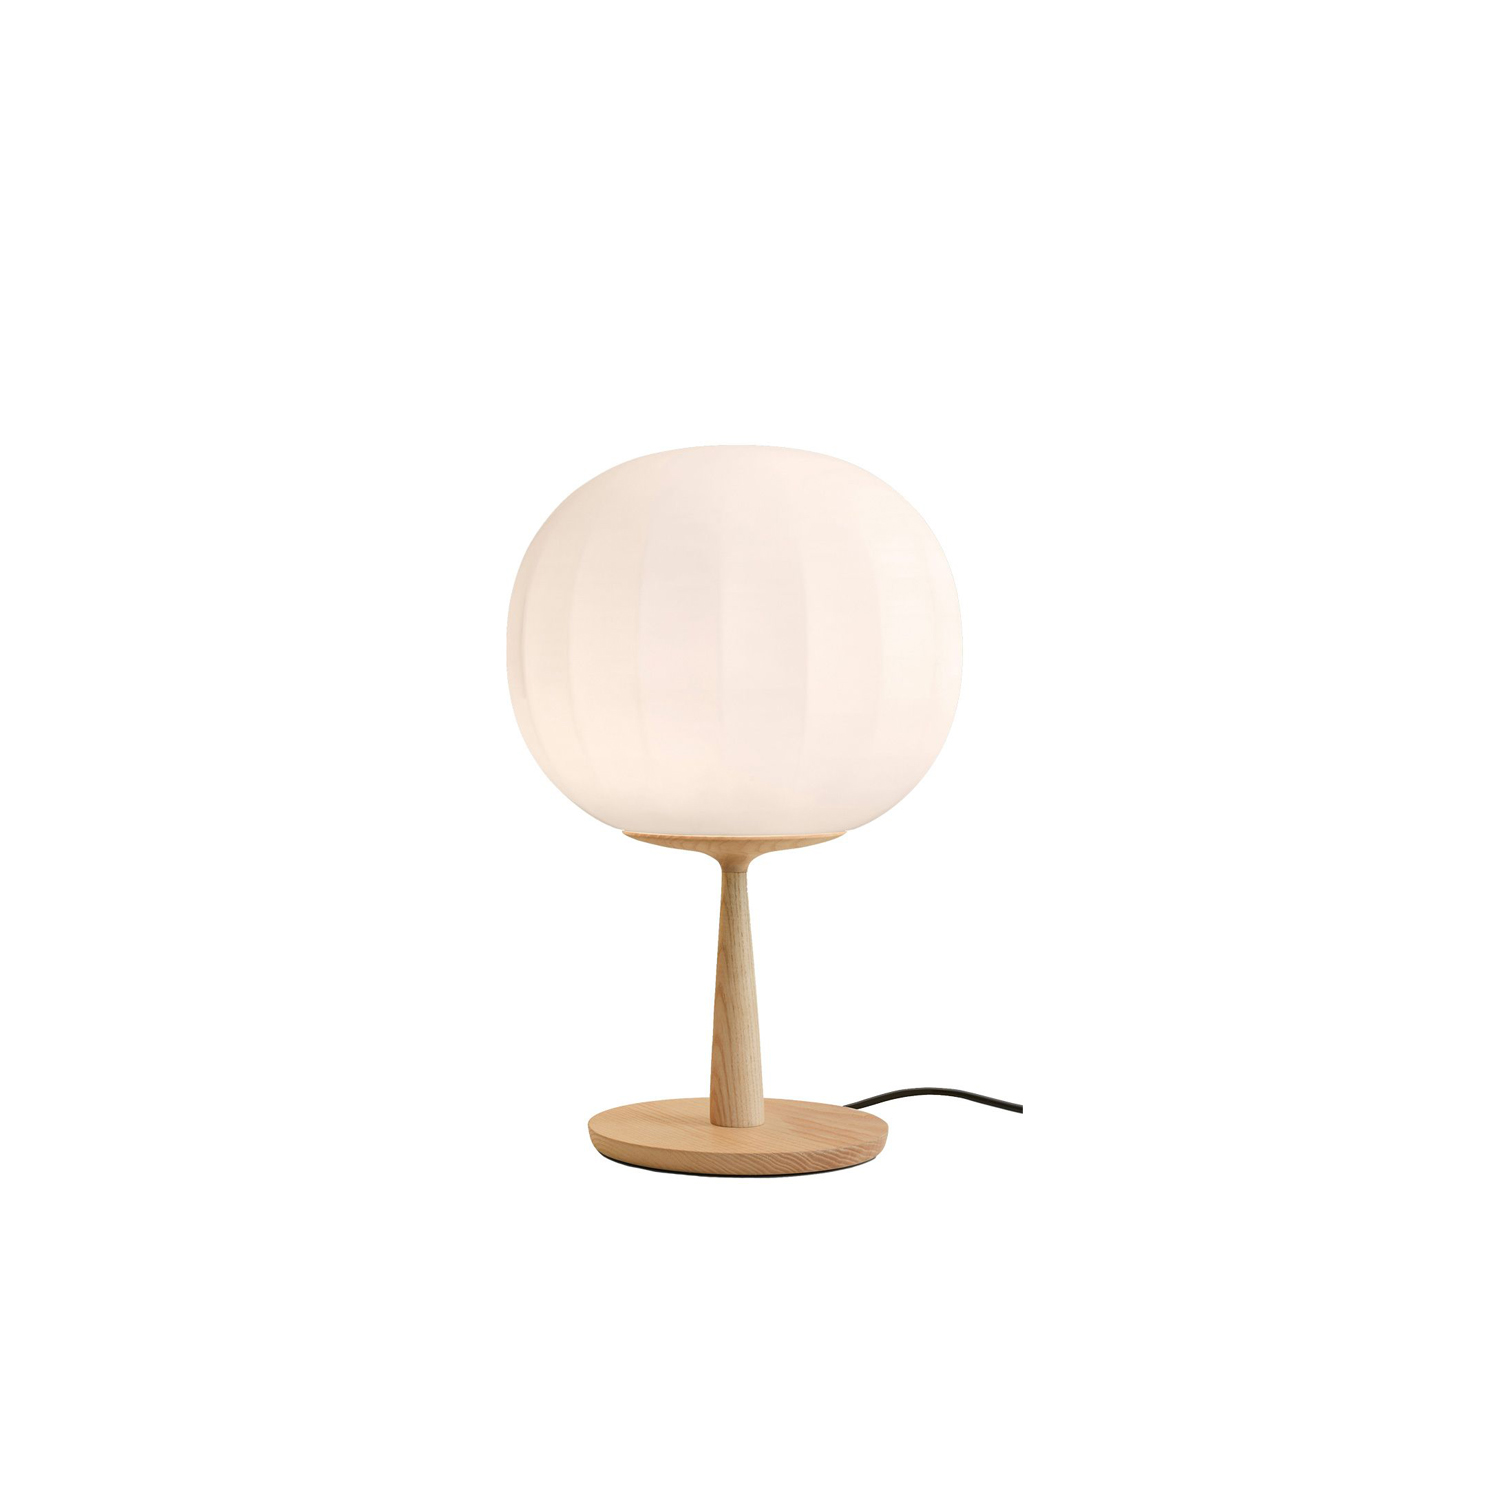 Lita Table Lamp  - Lita is a decorative lamps, the result of a delicate design process that mixes imagery, signs, geometric textures and natural materials.  The diffuser in opaline blown glass – whose surface is scanned by the repetition of slight vertical cusps that vanish at the extremities – is combined with a wooden structure, making Lita a product with a forceful material character. | Matter of Stuff